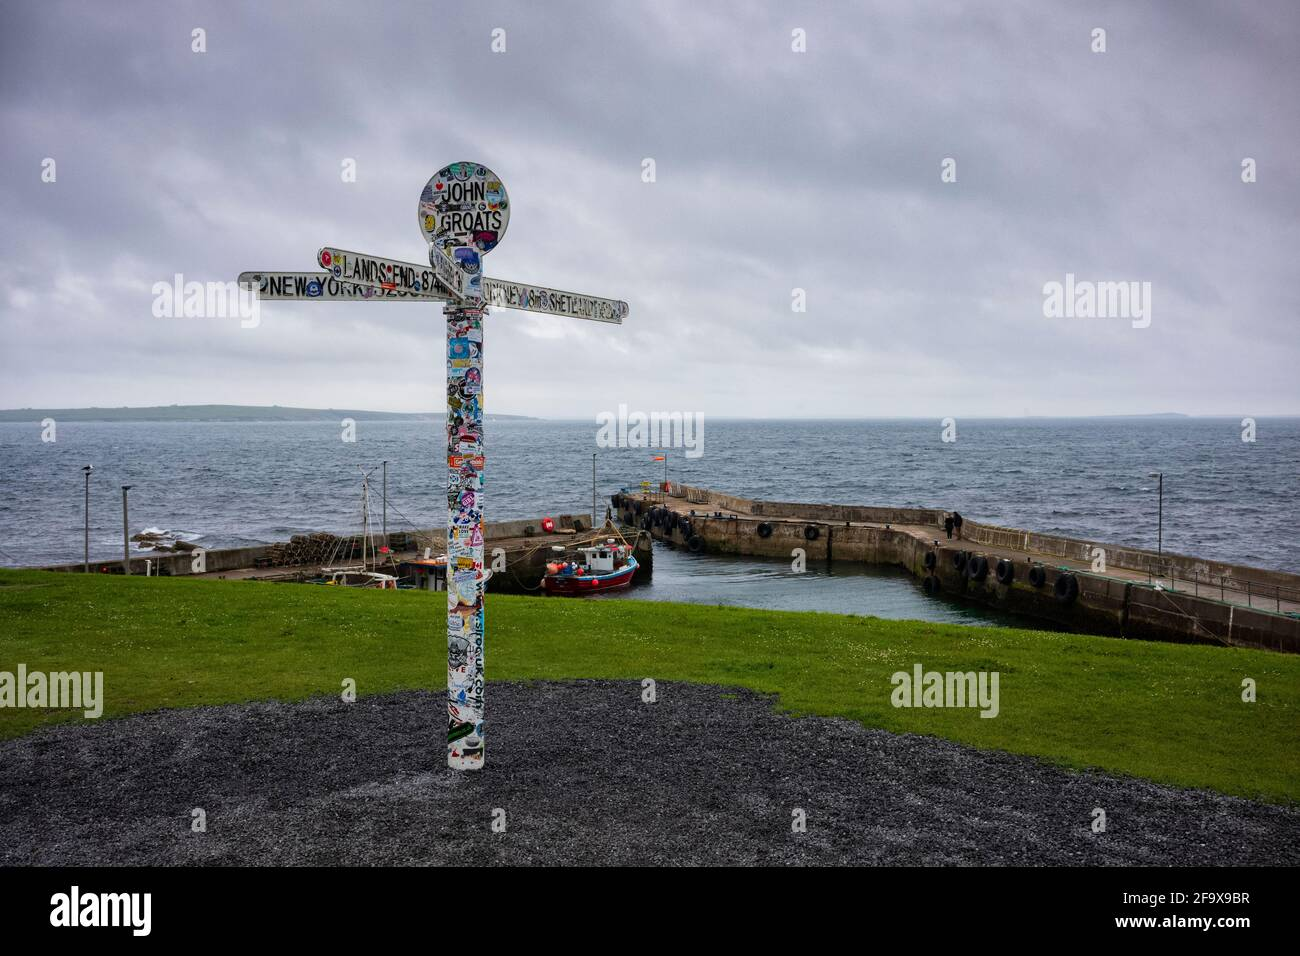 """John O'Groats, UK - June 24, 2019: The landmark """"Journey's End"""" signpost at John o' Groats, a popular tourist attraction marking the furthest north on Stock Photo"""